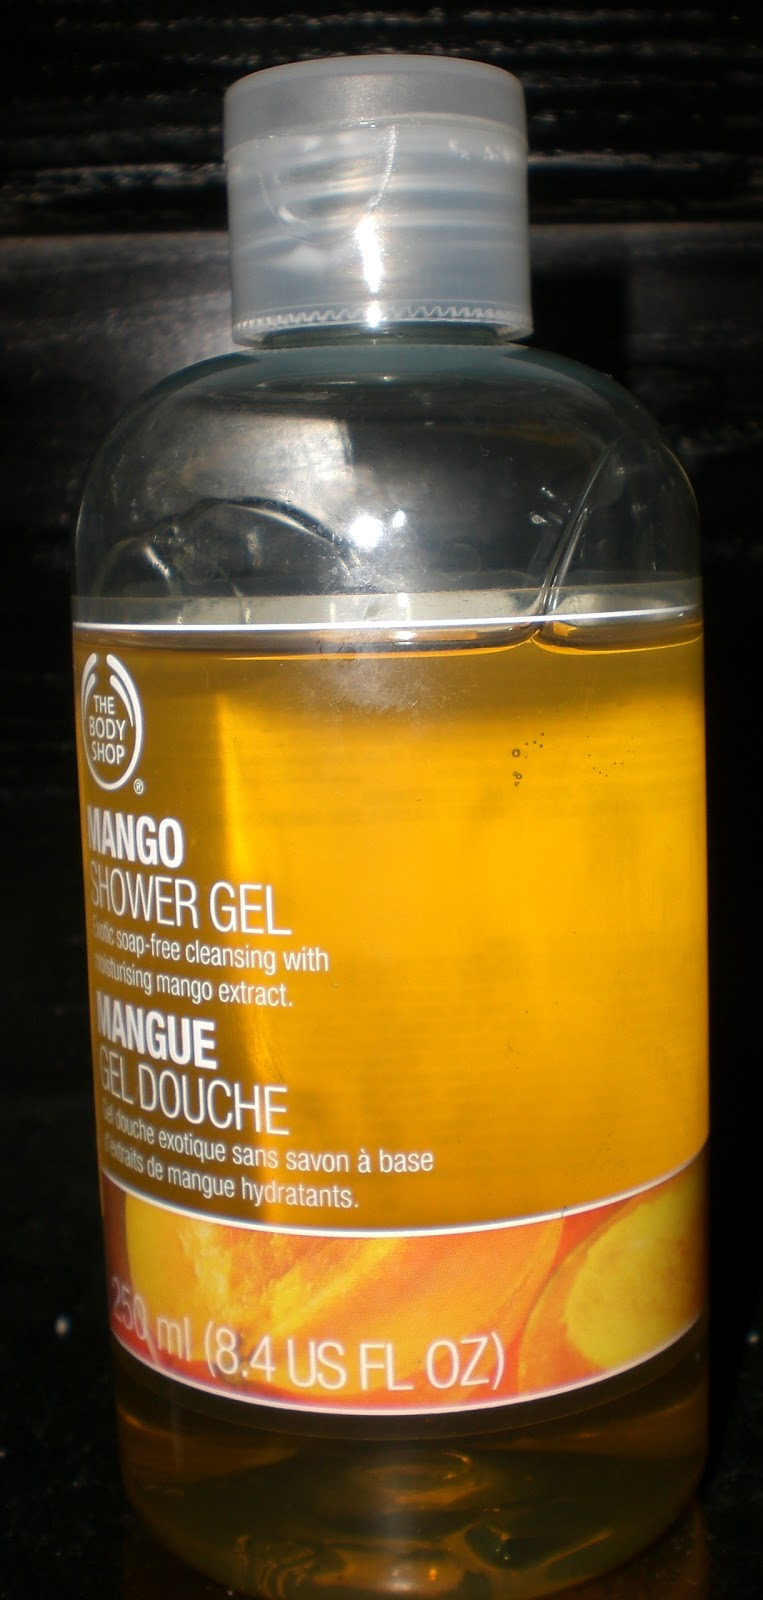 Cotton candy fro the body shop mango shower gel - The body shop mango shower gel ...